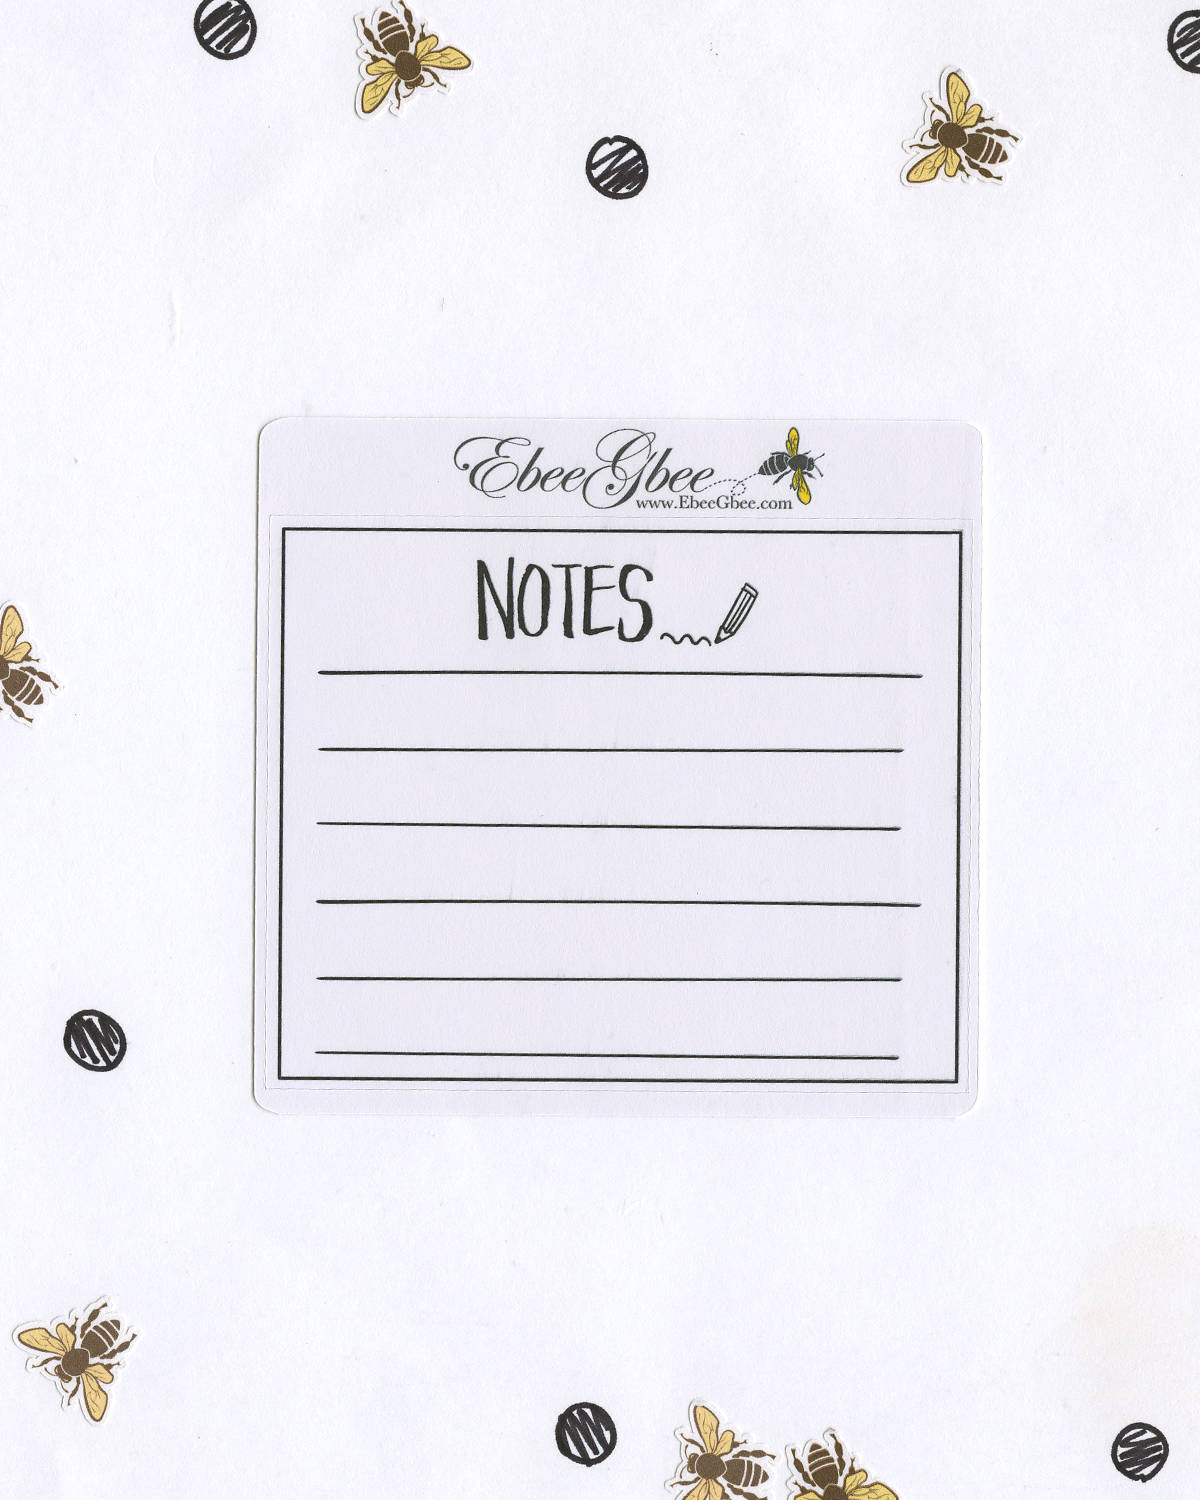 NOTES SINGLE BOX set of 3 Hand Drawn Large Box Note Page Planner Stickers